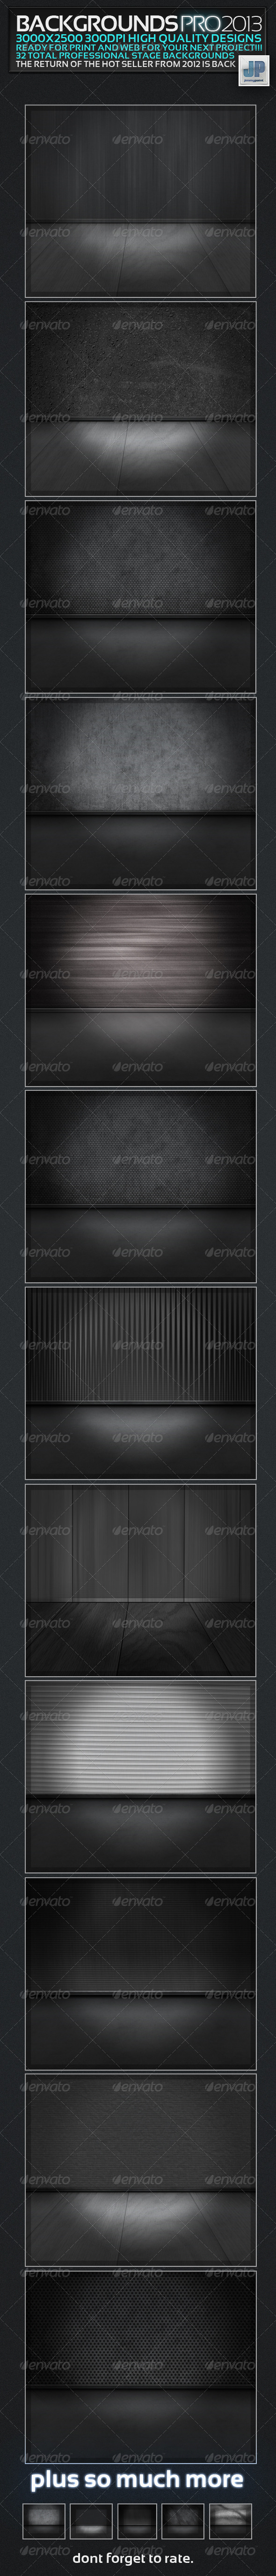 GraphicRiver Backgrounds Pro 2013 4754807